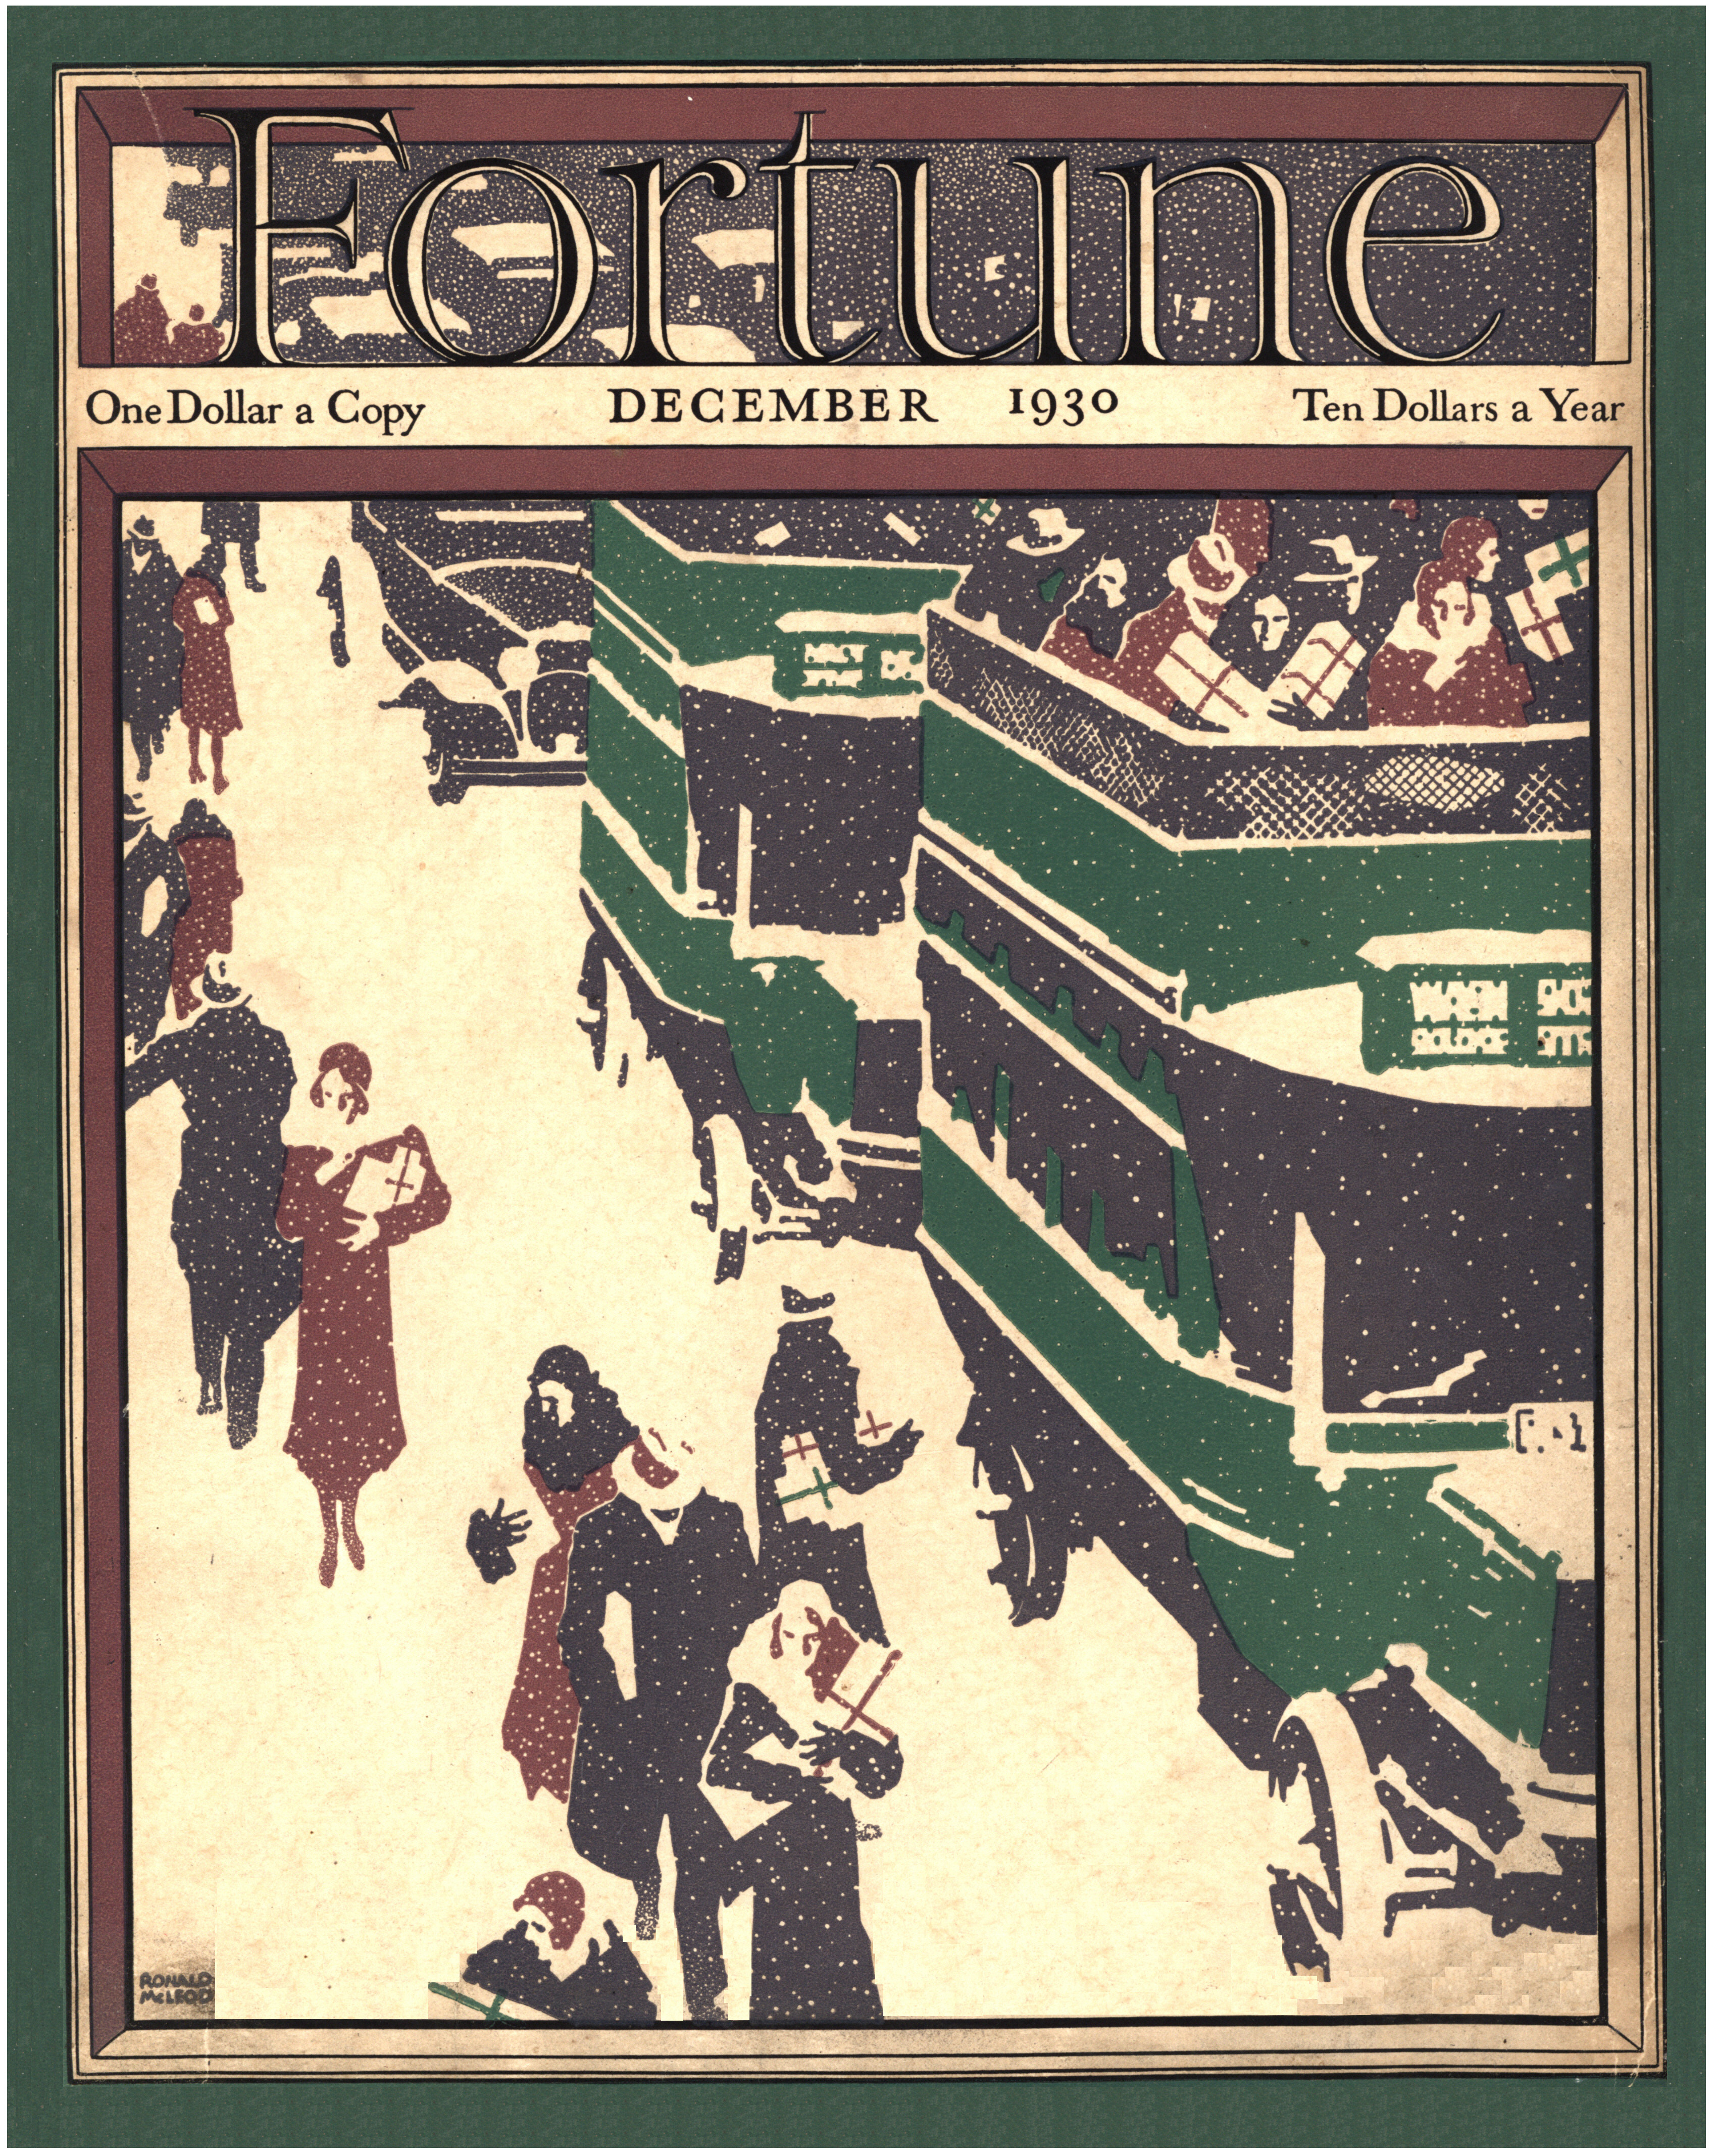 The illustrated cover of the Dec. 1930 issue of Fortune magazine.